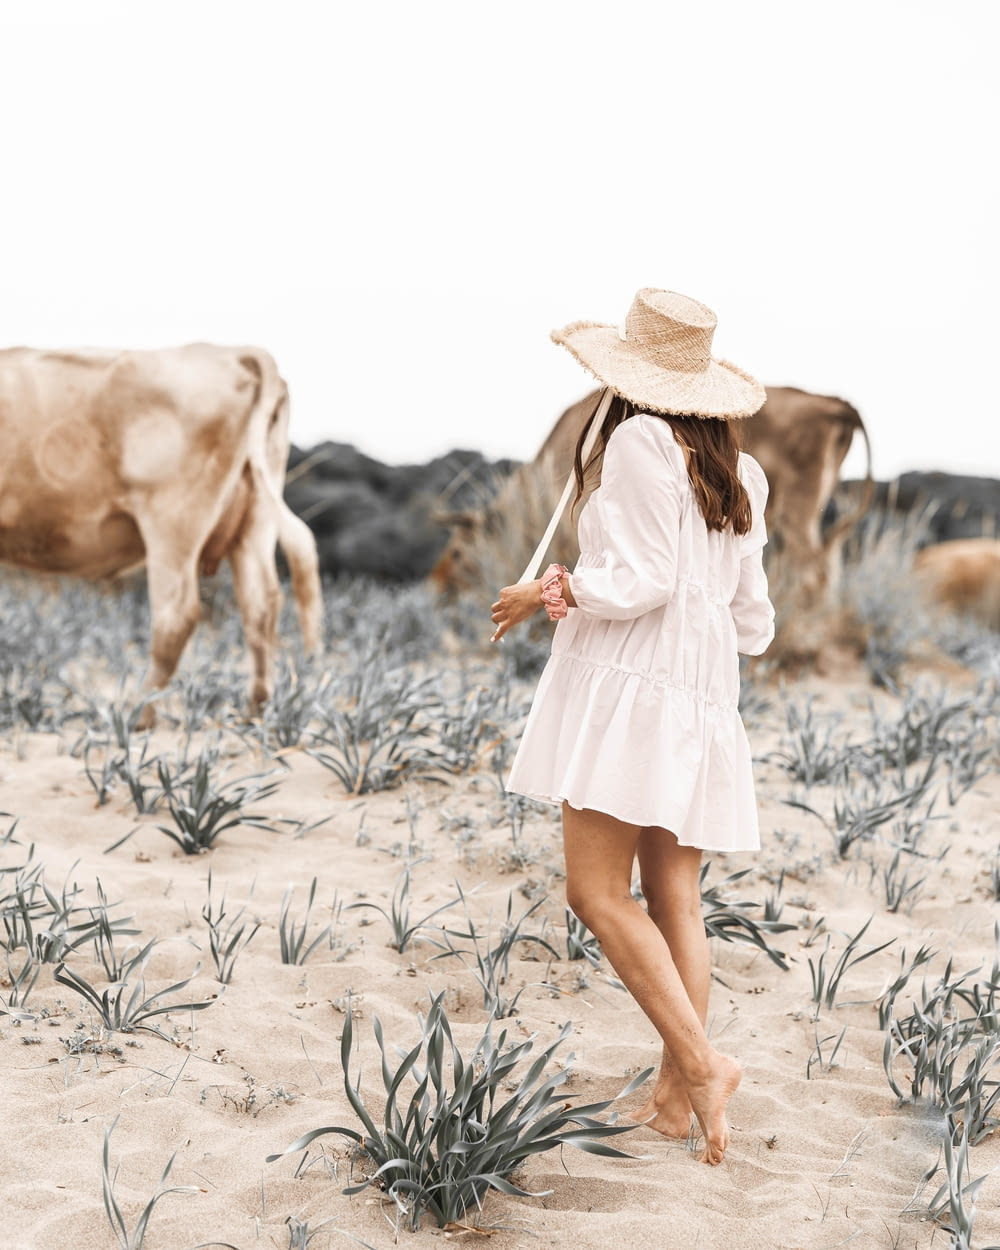 woman in white dress and brown hat walking on brown sand during daytime